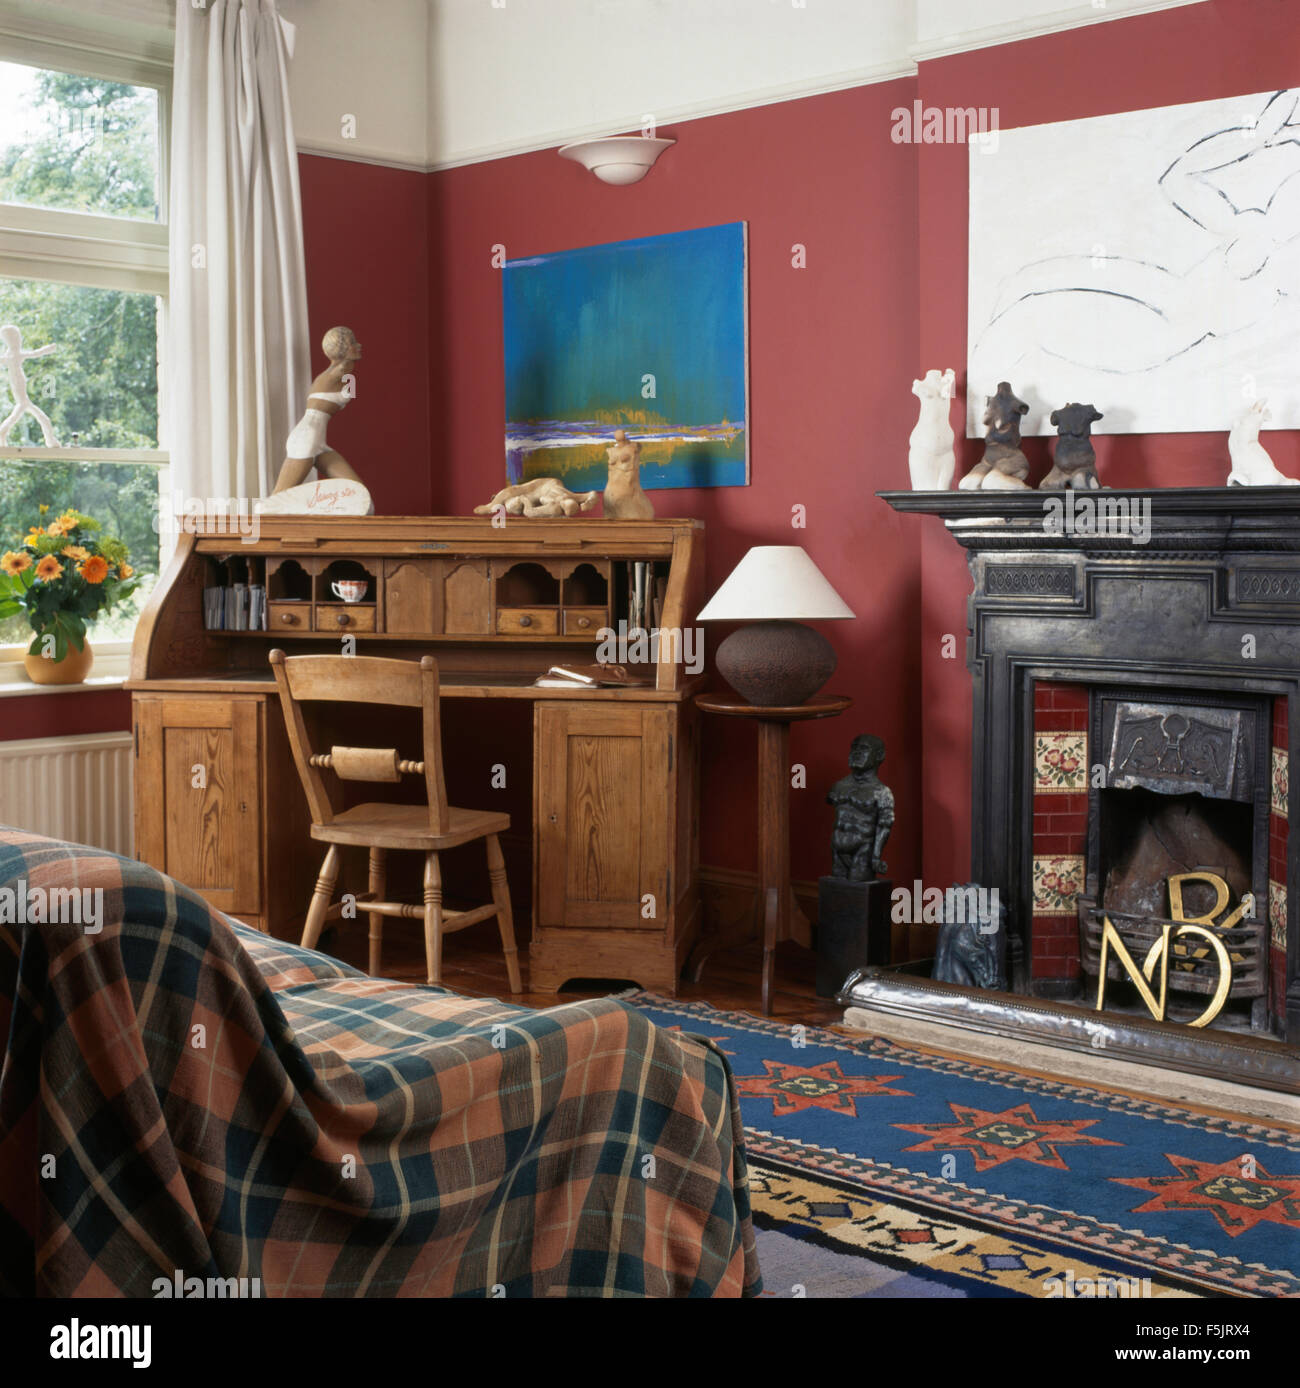 Plaid Living Room Furniture Plaid Throw And Old Pine Bureau In A Red Nineties Living Room With